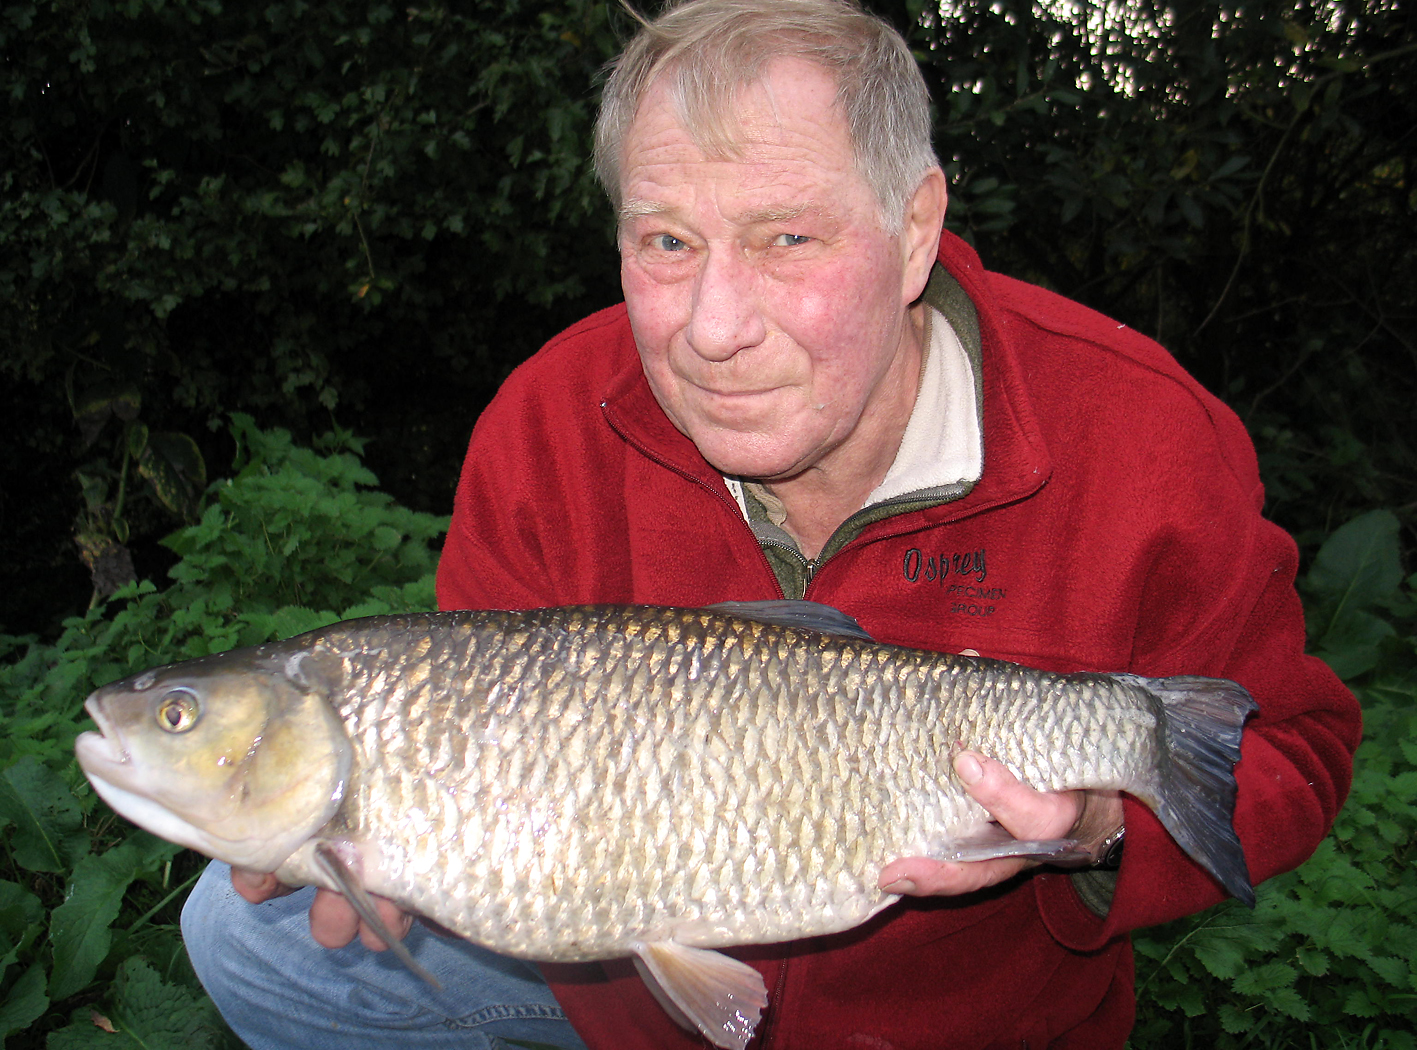 Bob with an 8lb 9oz Lea monster